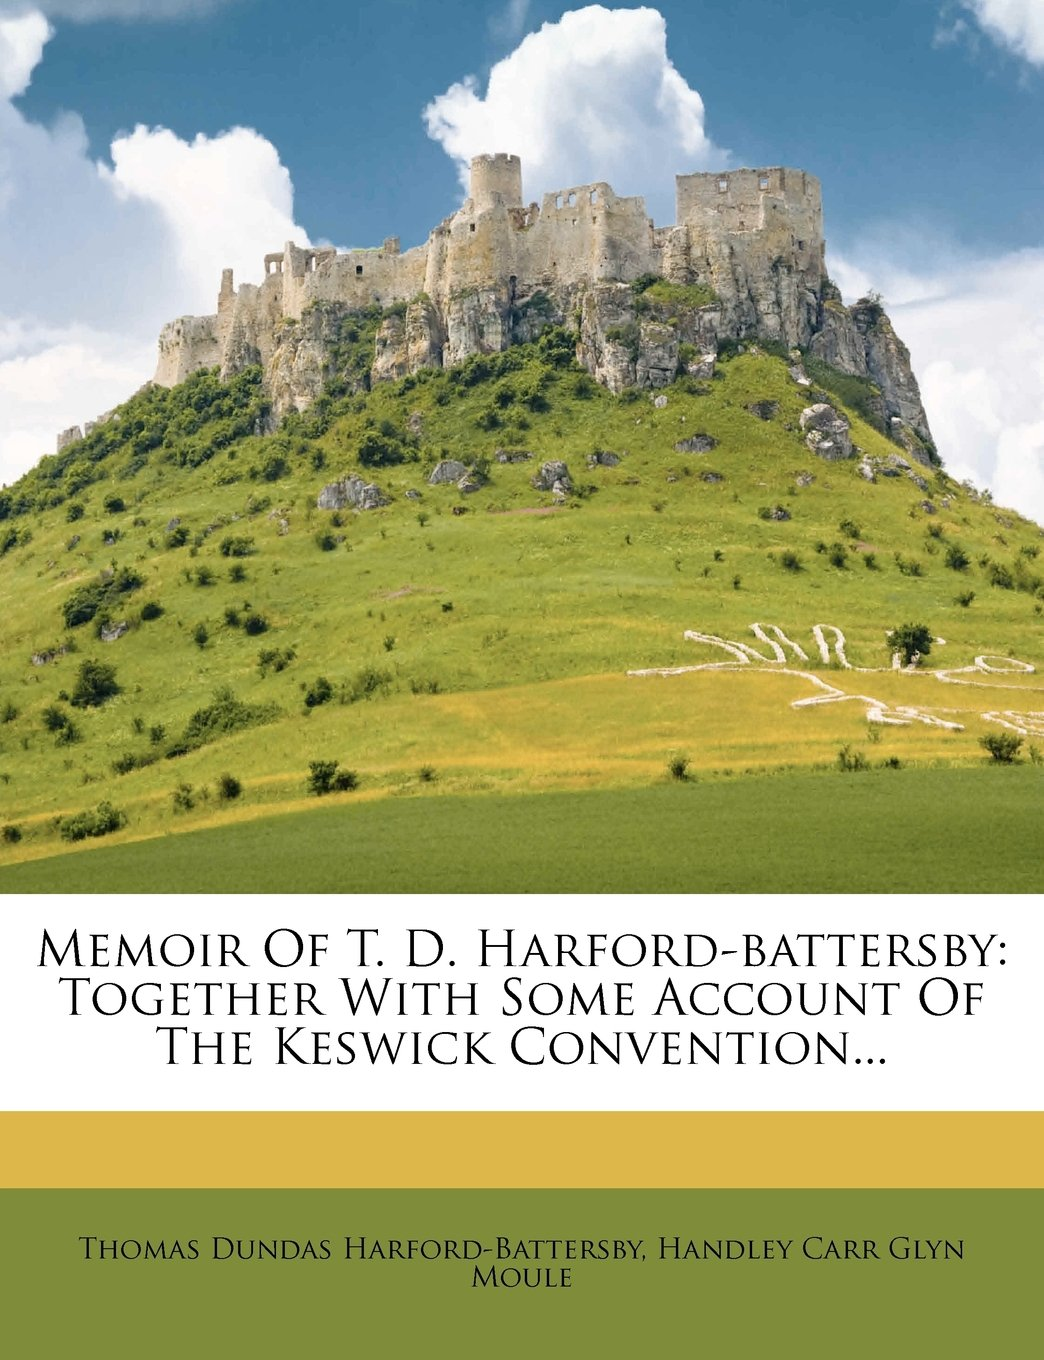 Download Memoir Of T. D. Harford-battersby: Together With Some Account Of The Keswick Convention... PDF